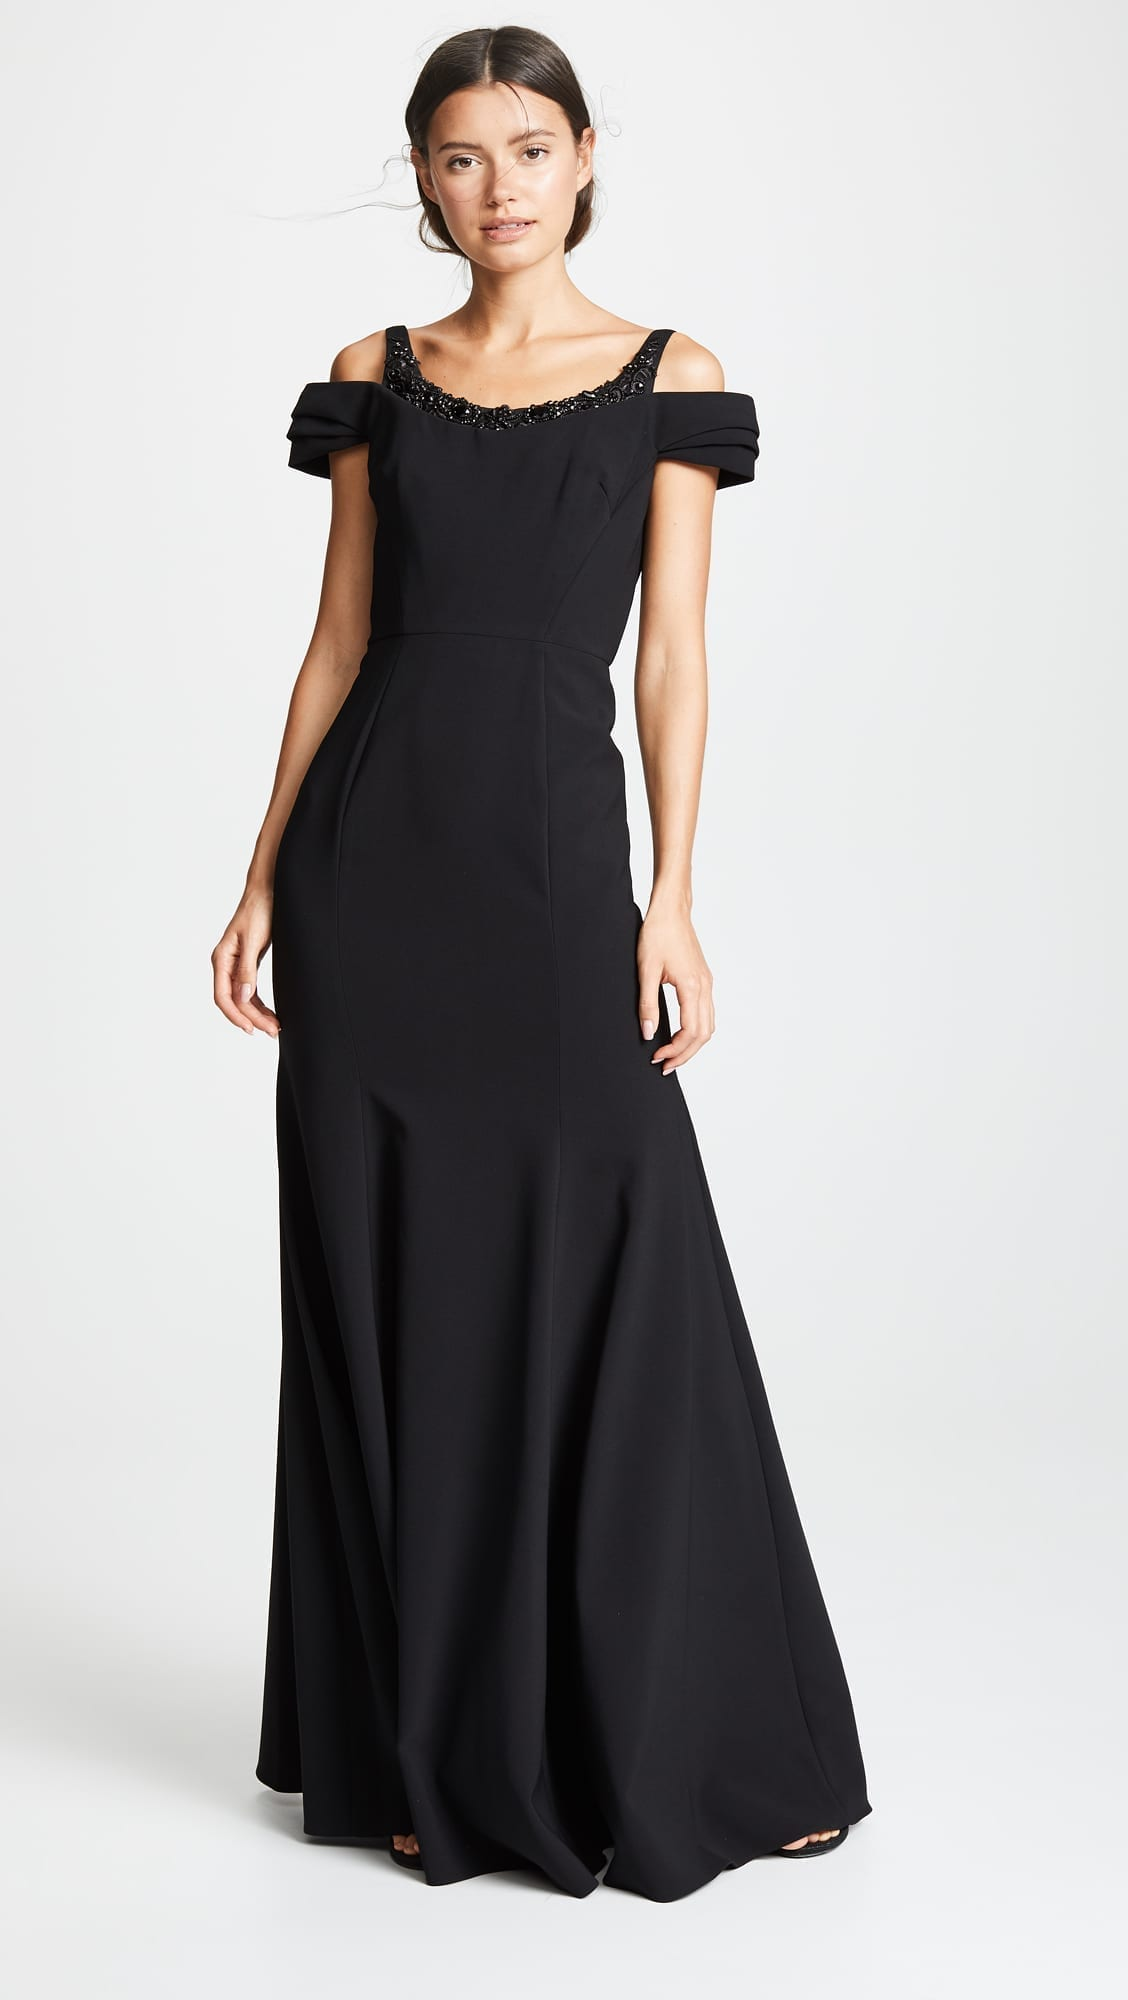 MARCHESA NOTTE Beaded Black Gown - We Select Dresses